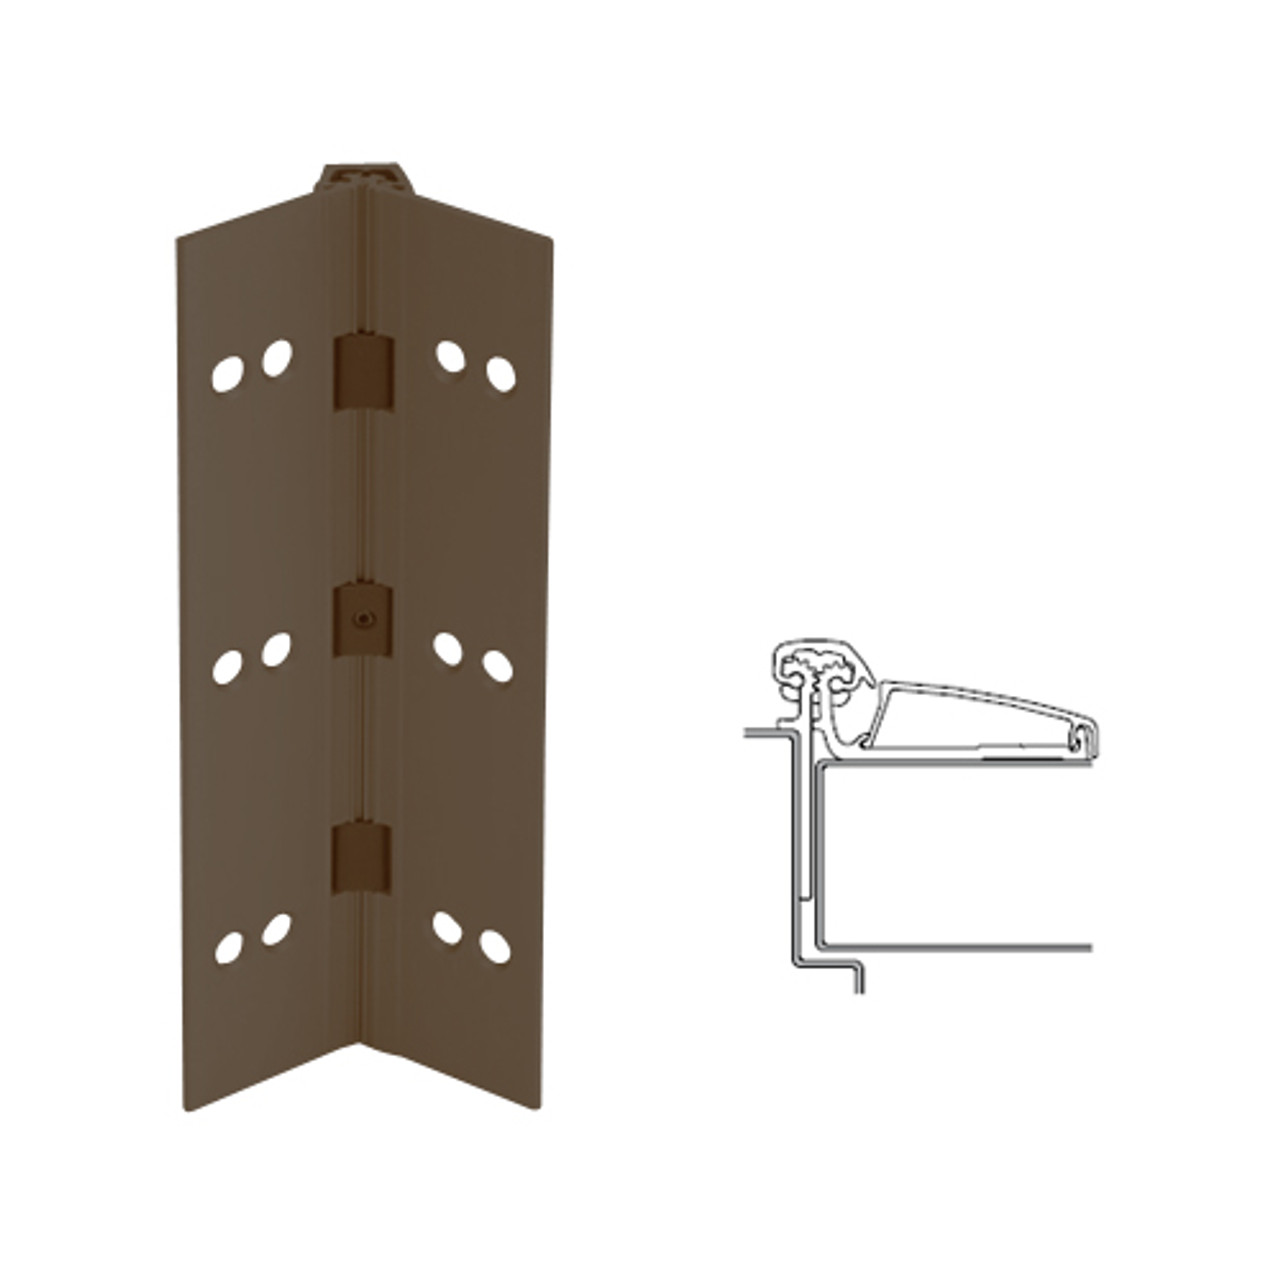 045XY-313AN-85-SECHM IVES Adjustable Half Surface Continuous Geared Hinges with Security Screws - Hex Pin Drive in Dark Bronze Anodized